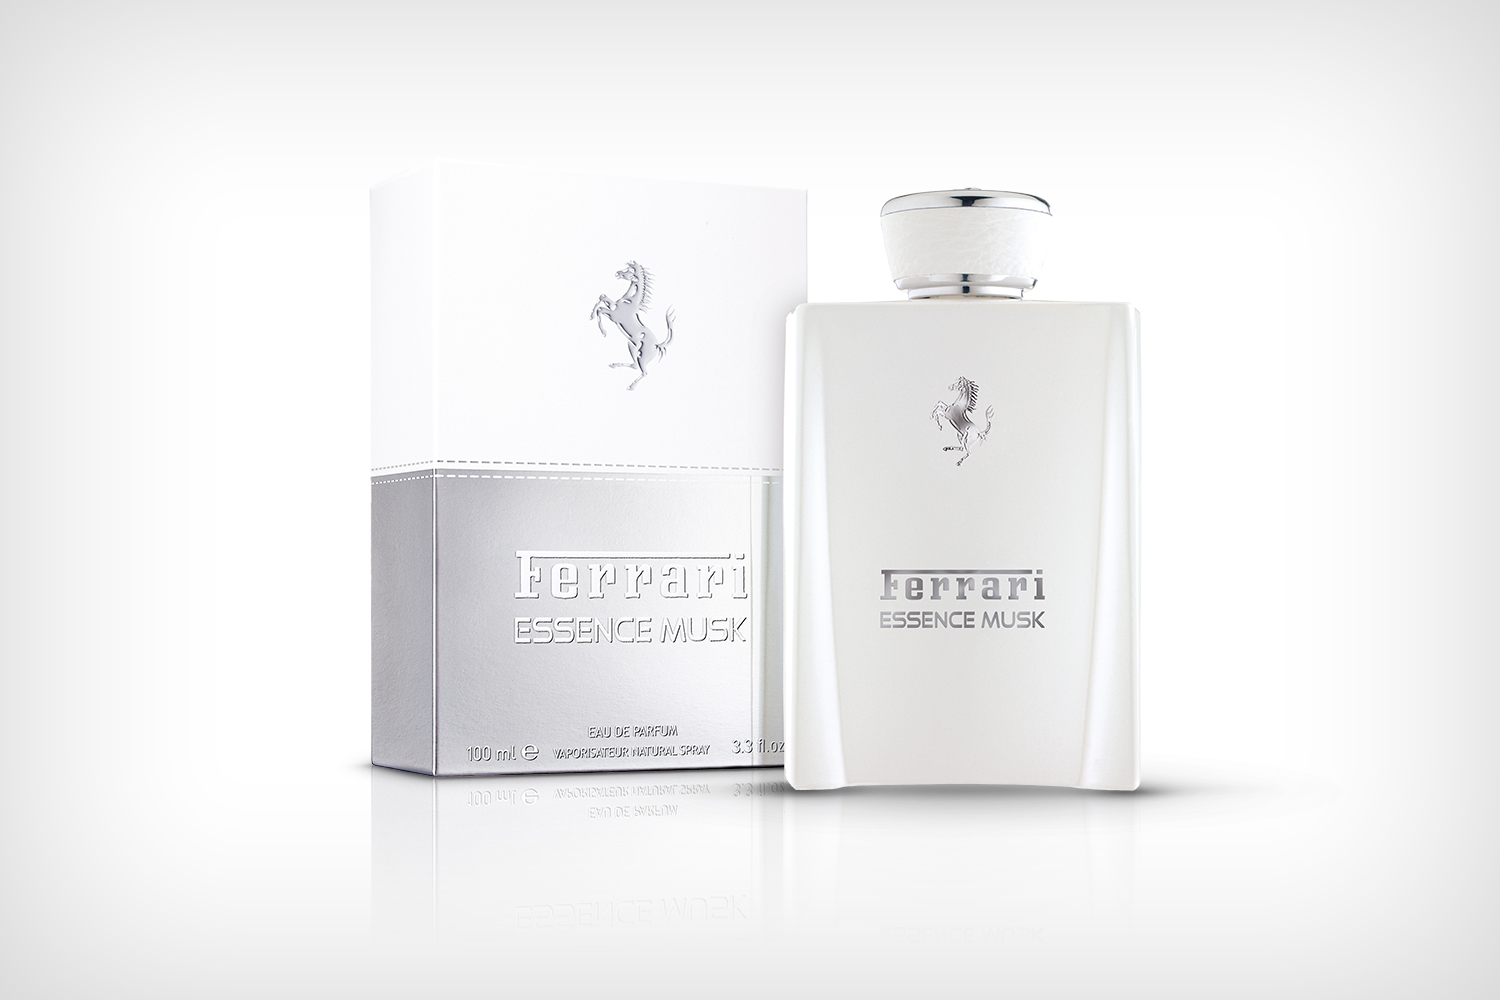 Ferrari Essence Musk for Men Eau De Parfum 100ml